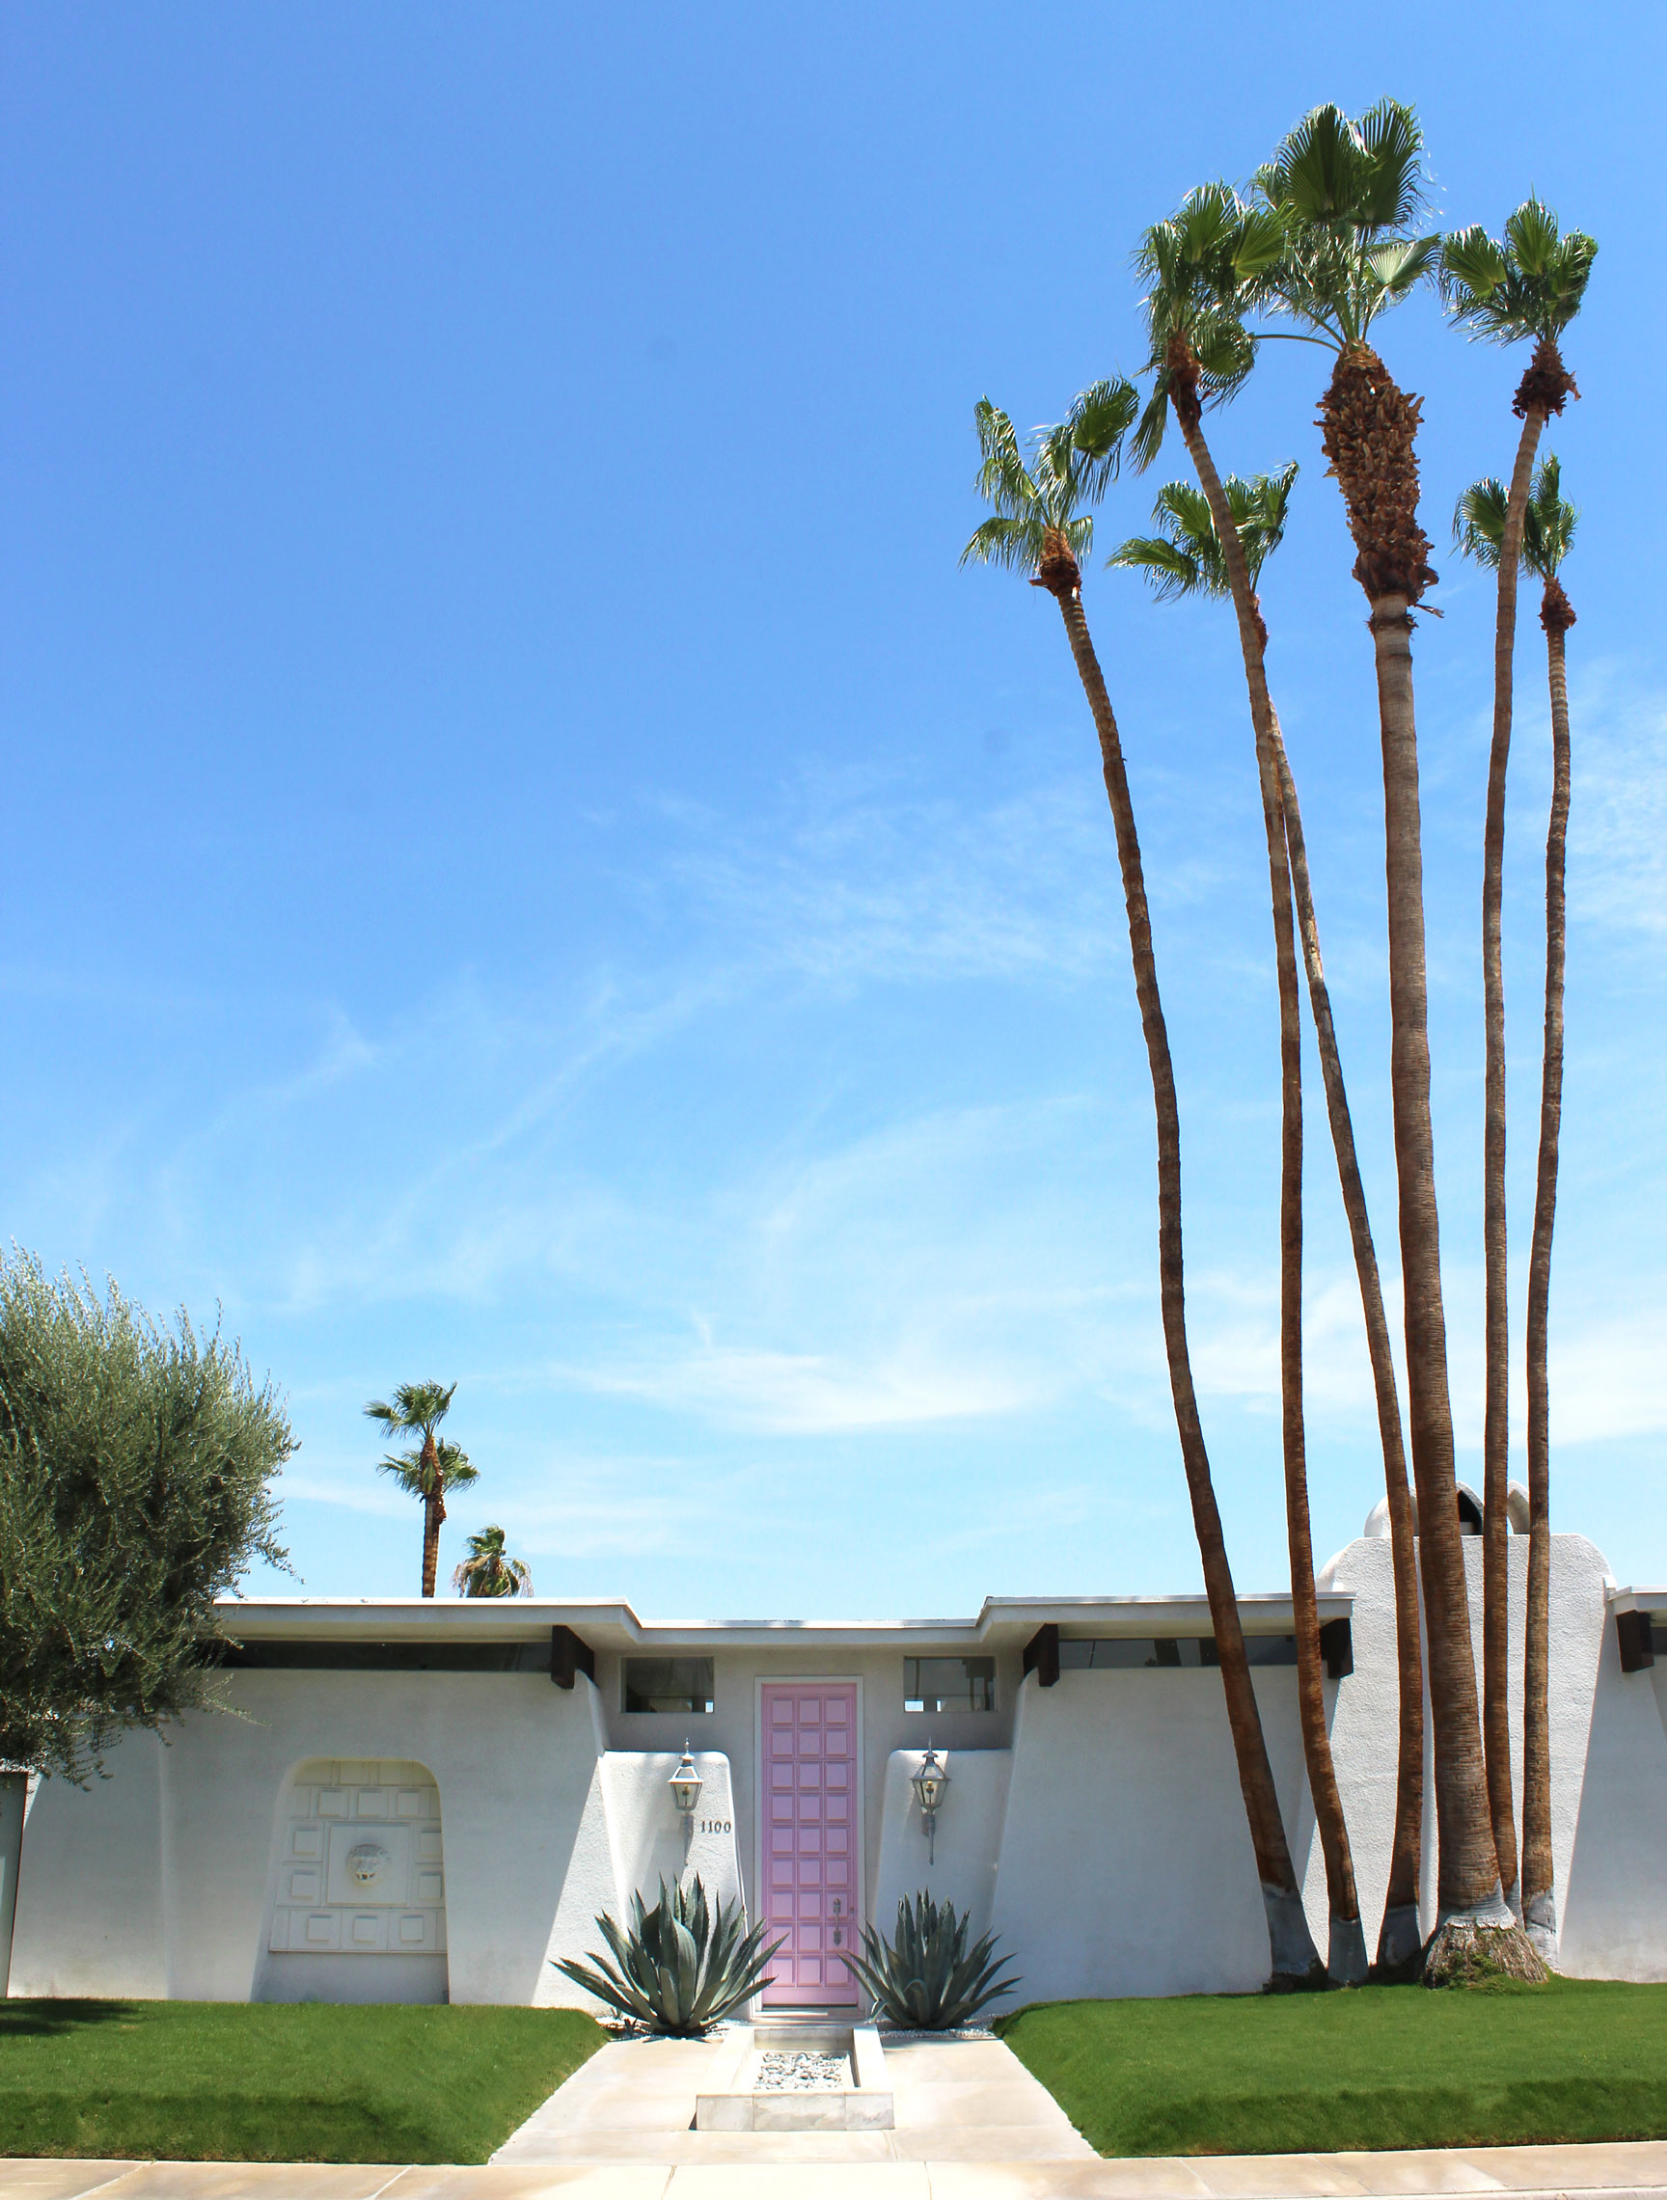 Pink door house in Palm Springs - love the midcentury modern architecture and palm trees  Sundays and Somedays